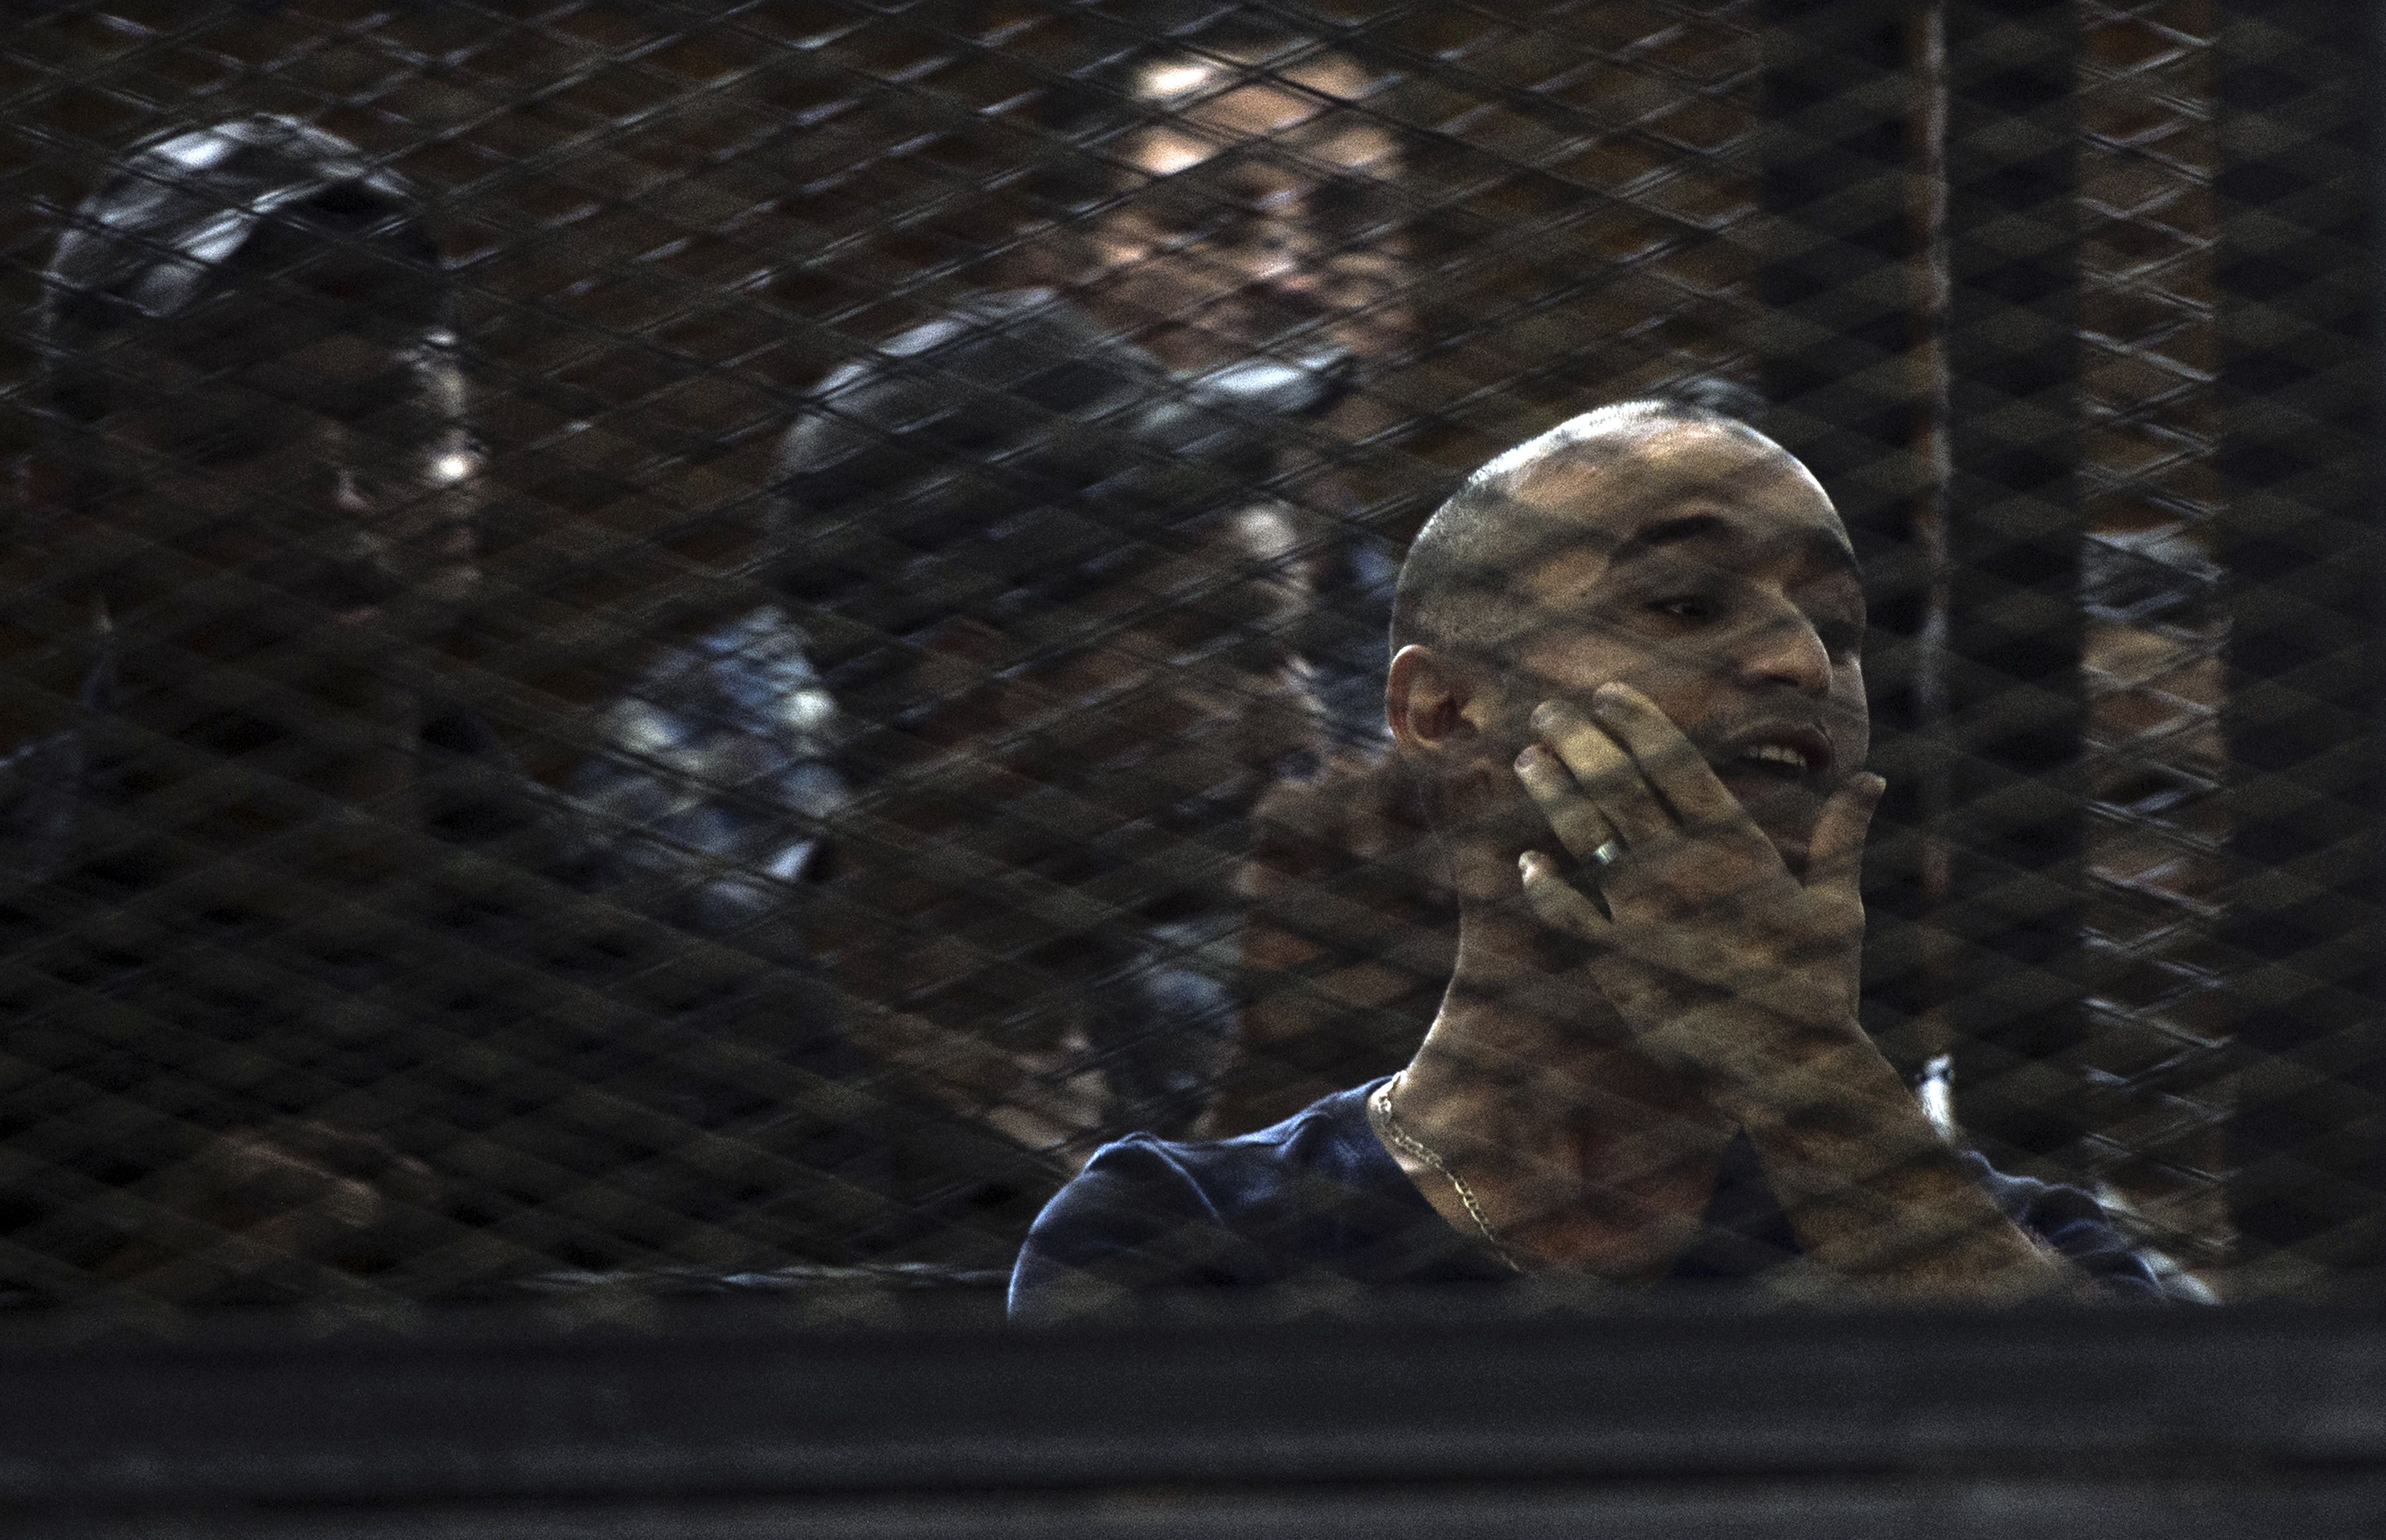 The trial of Ahmed Douma and 268 others, relating to 2011 violence, was postponed Wednesday until 4 August. (AFP PHOTO / KHALED DESOUKI)